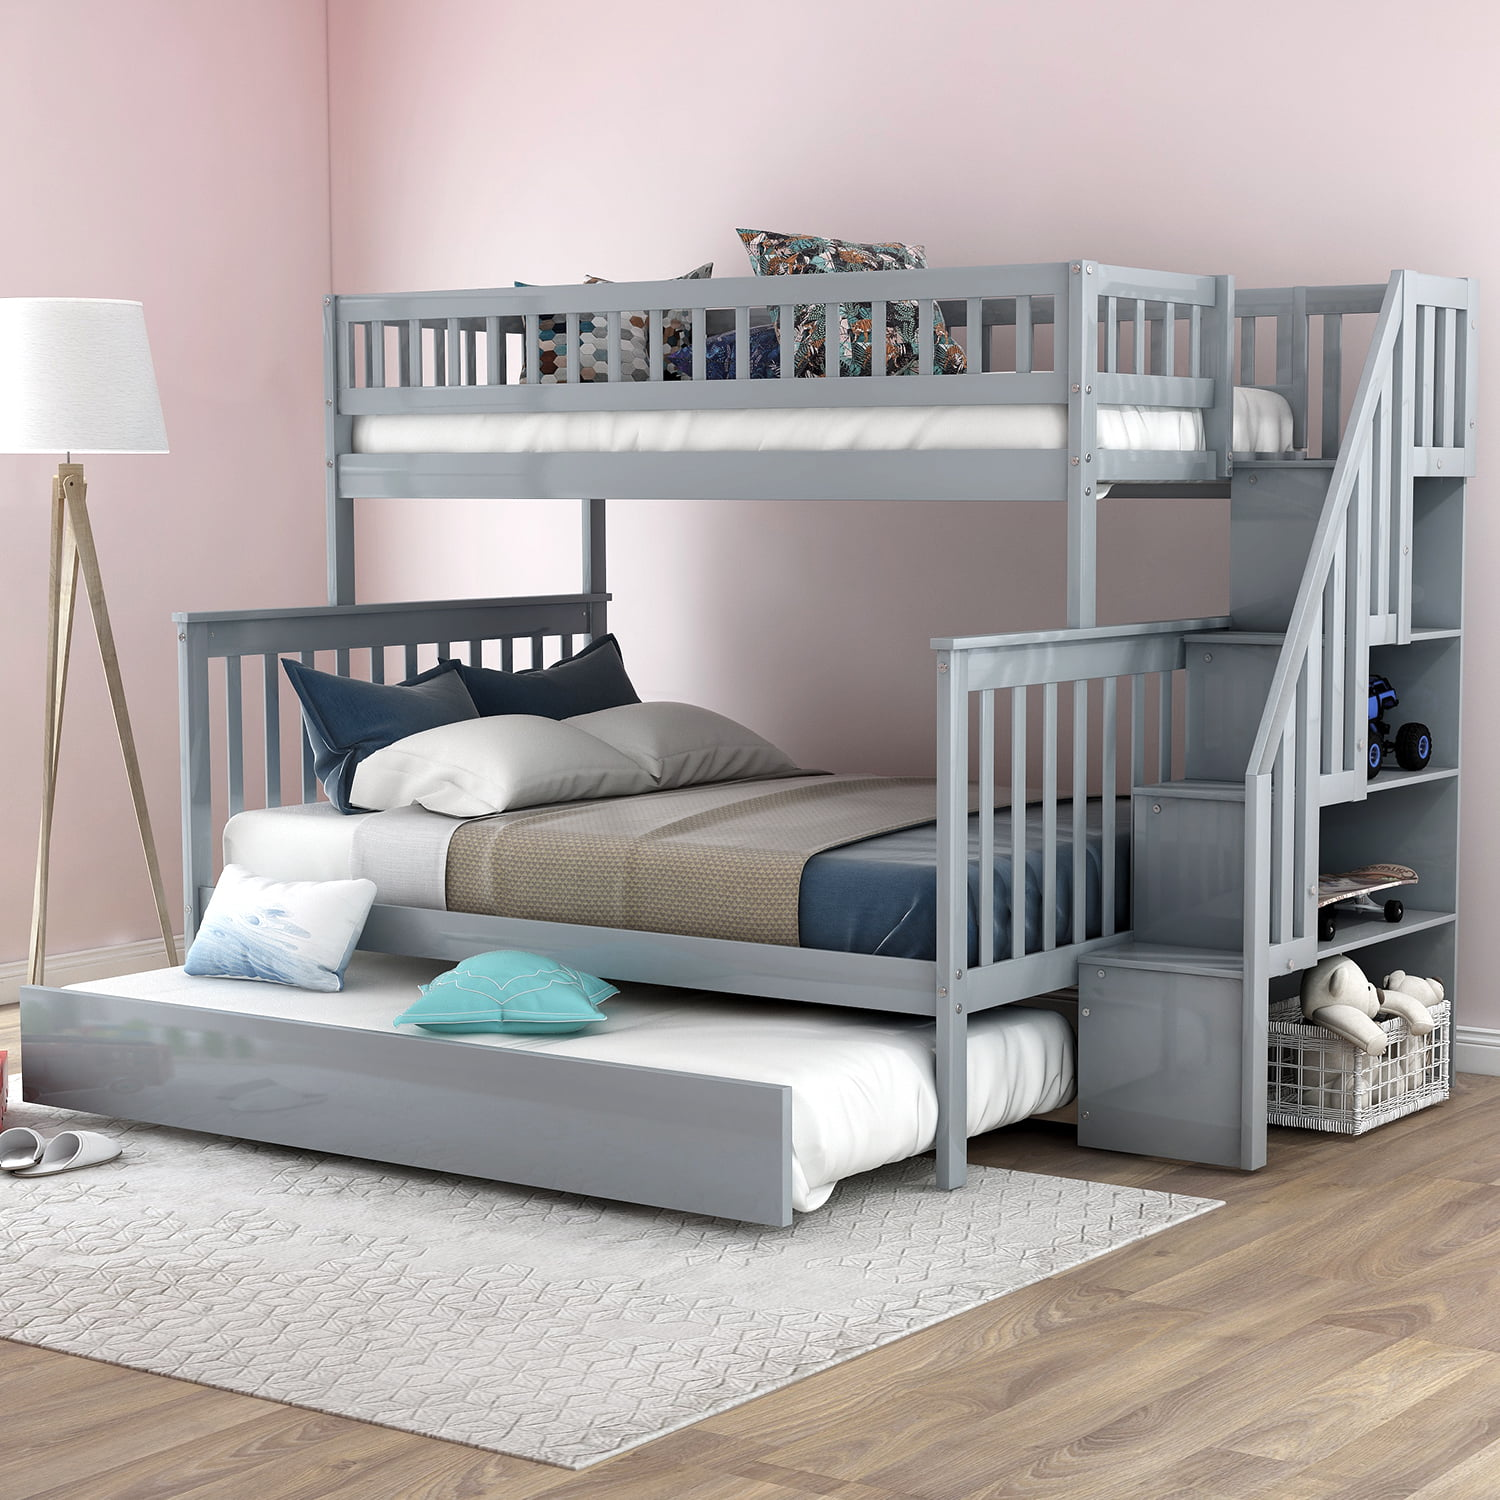 Bunk Bedideas: Harper&Bright Designs Twin Over Full Bunk Bunk Bed With